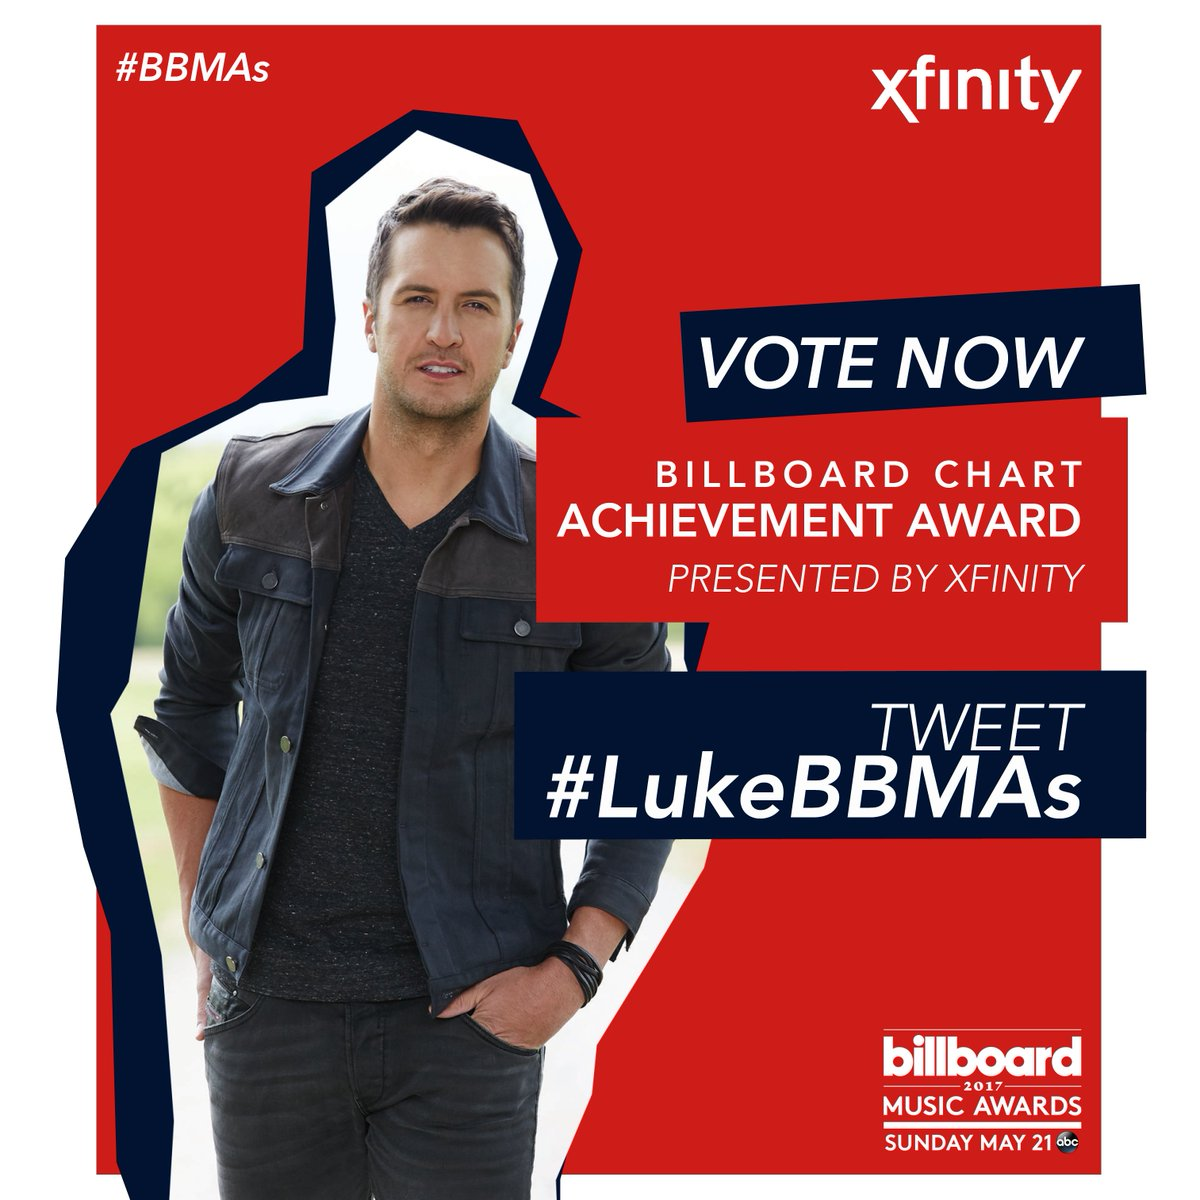 Voting for the billboard chart achievement award presented ...